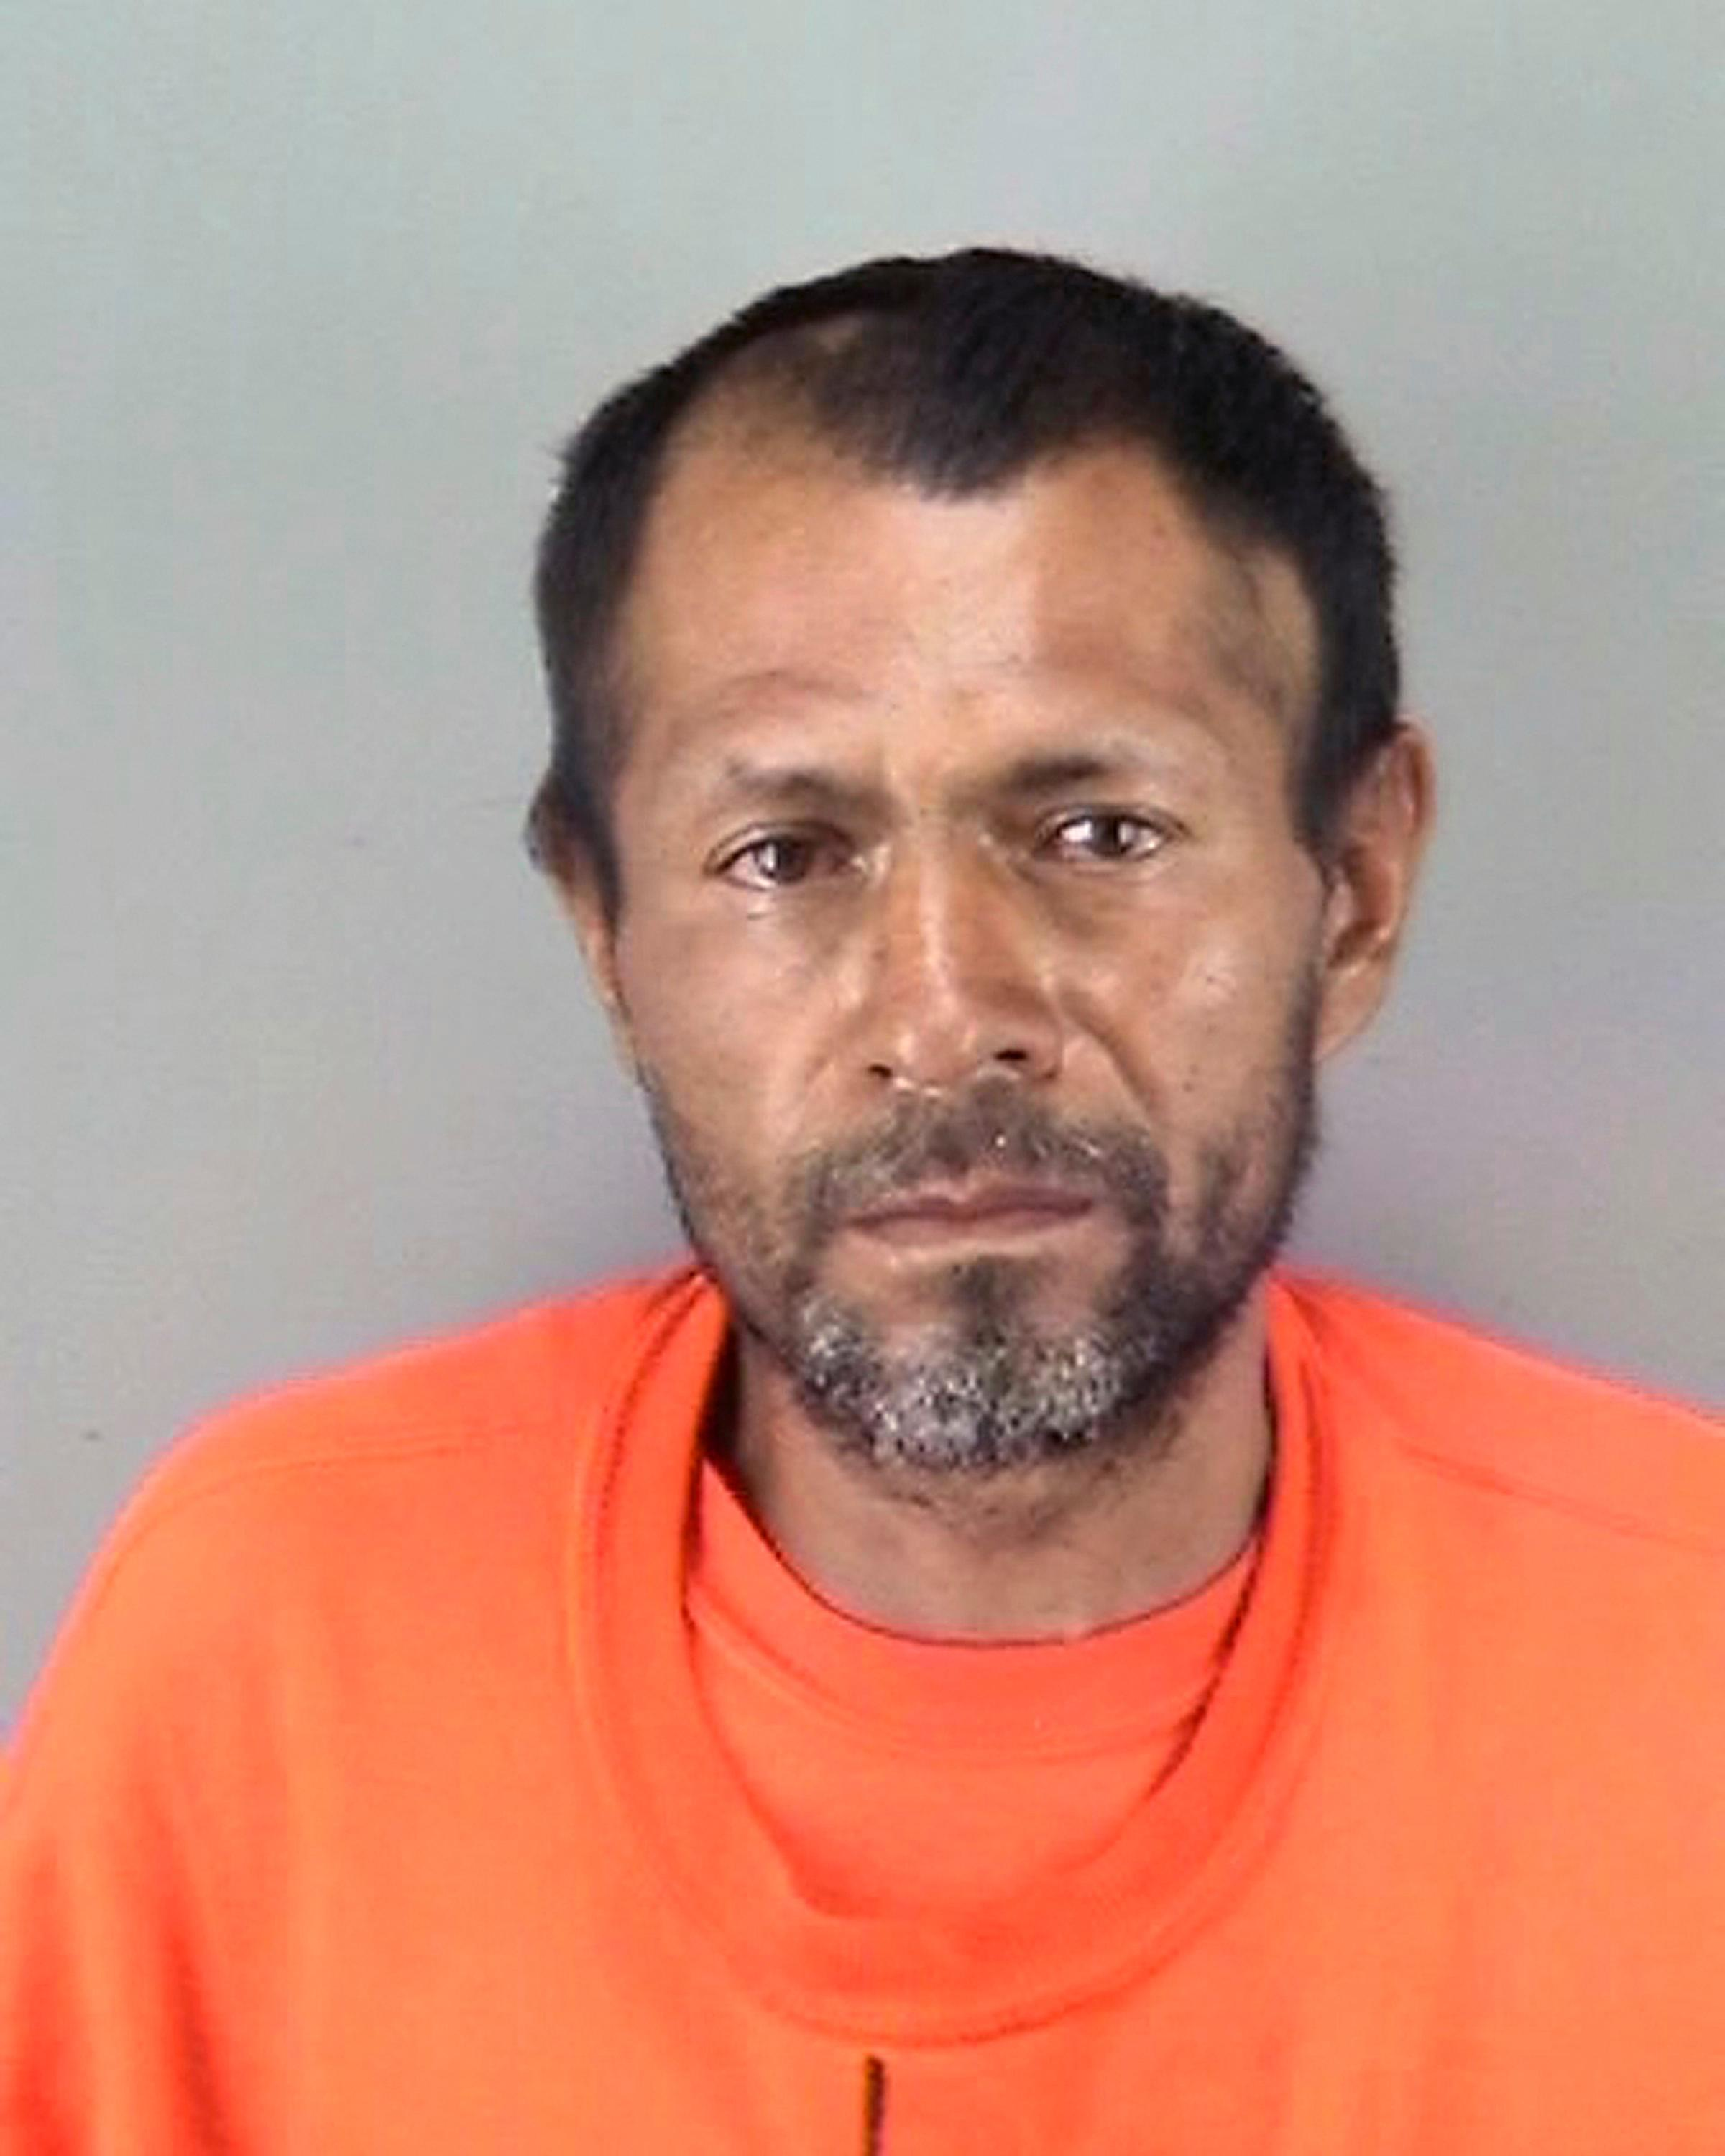 FILE - This undated file booking photo provided by the San Francisco Police Department shows Jose Ines Garcia Zarate. Attorneys were beginning their final arguments Monday, Nov. 20, 2017, in the trial of Zarate, accused of killing a woman on a San Francisco pier in a case that touched off a national immigration debate. The trial resumed Monday morning with instructions to the jury reminding them not to read newspapers or view social media while they are considering the case.  (San Francisco Police Department via AP, File)